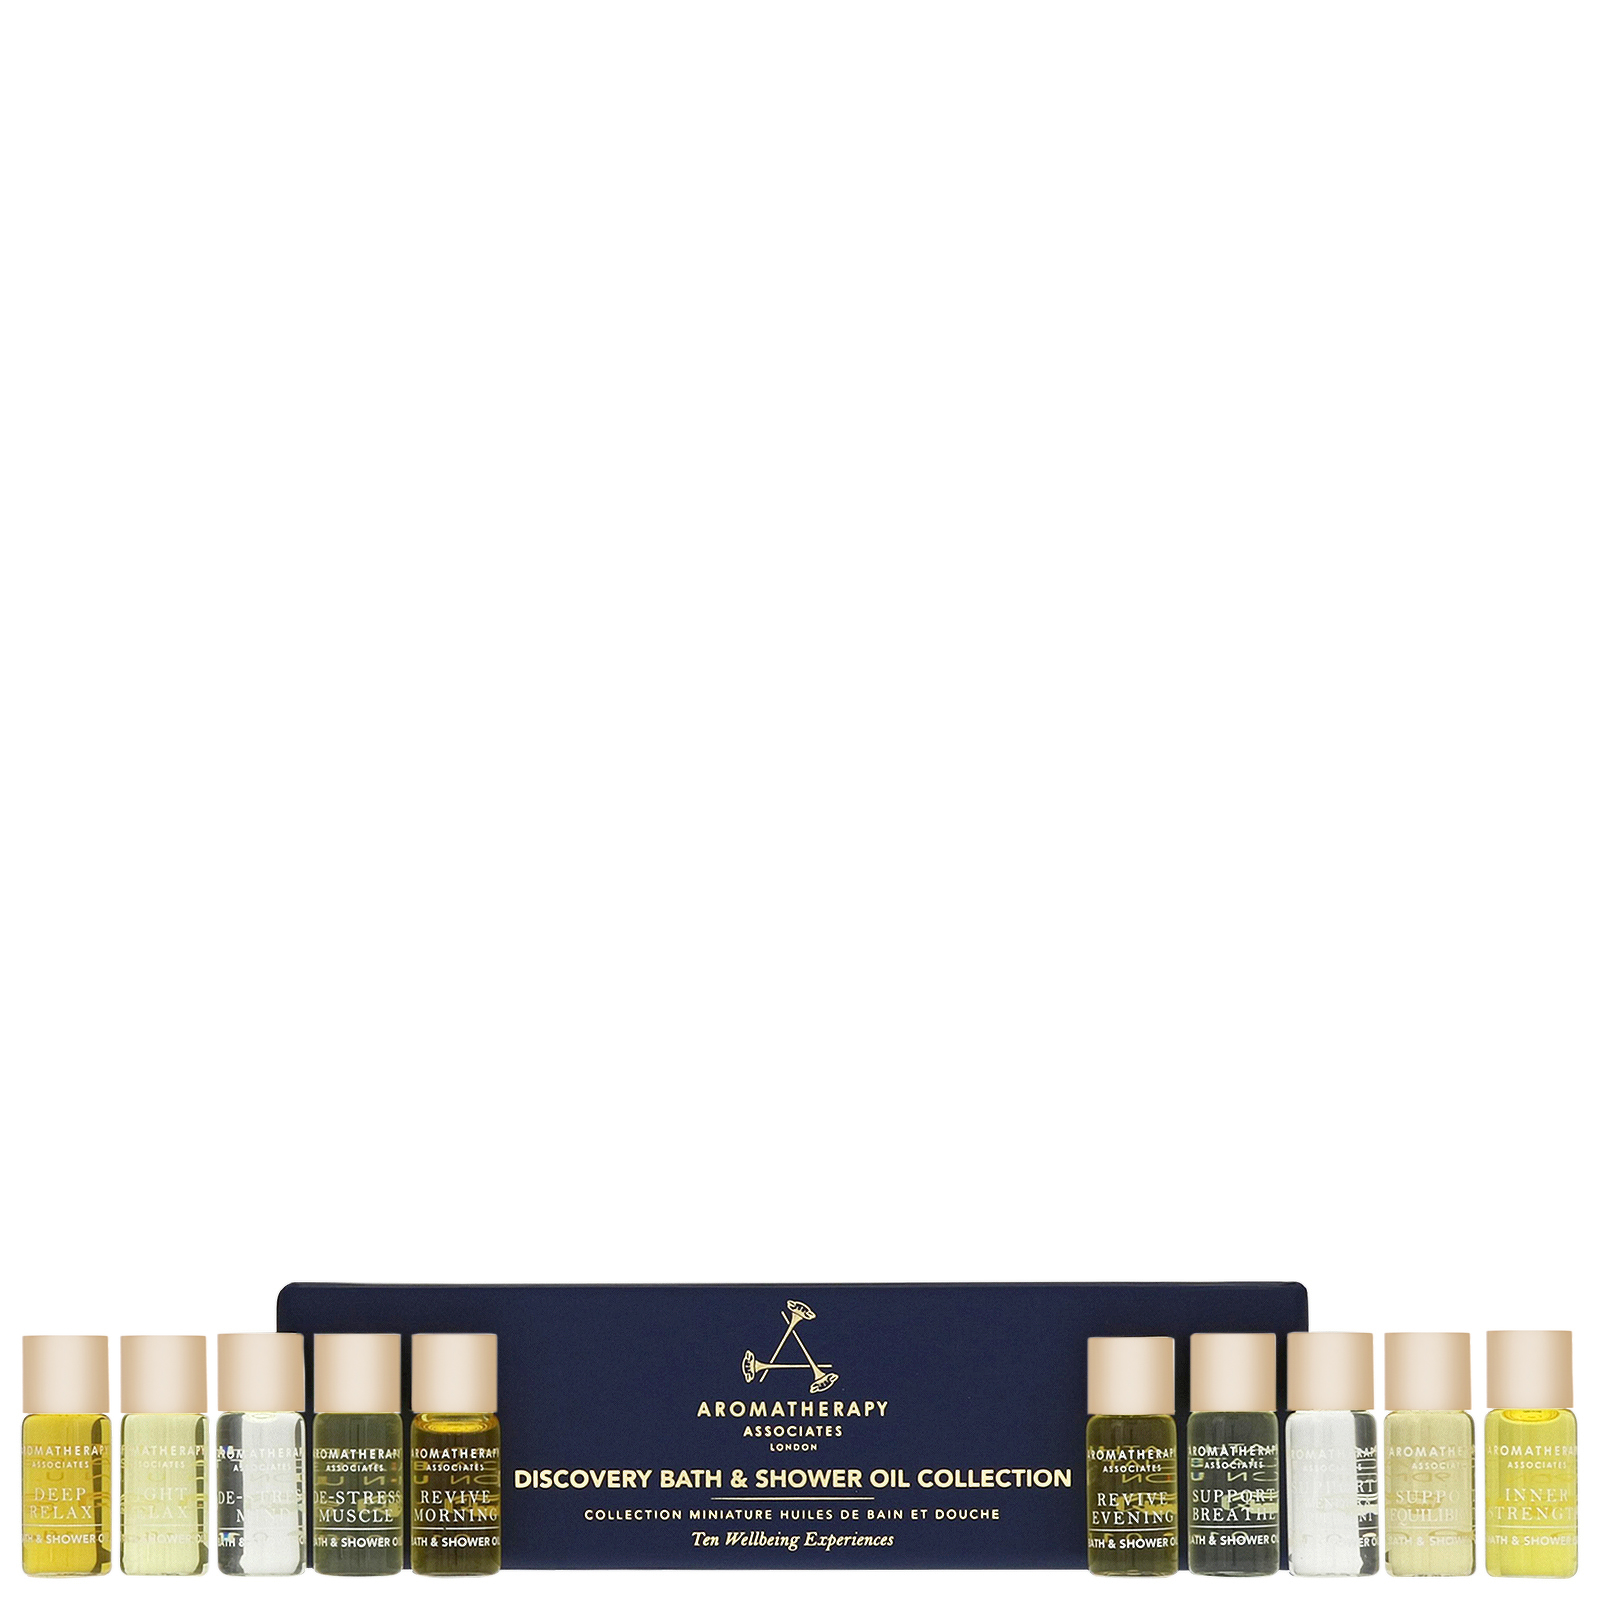 Aromatherapy Associates Gifting Discovery Bath & Shower Oil Collection 10 x 3ml